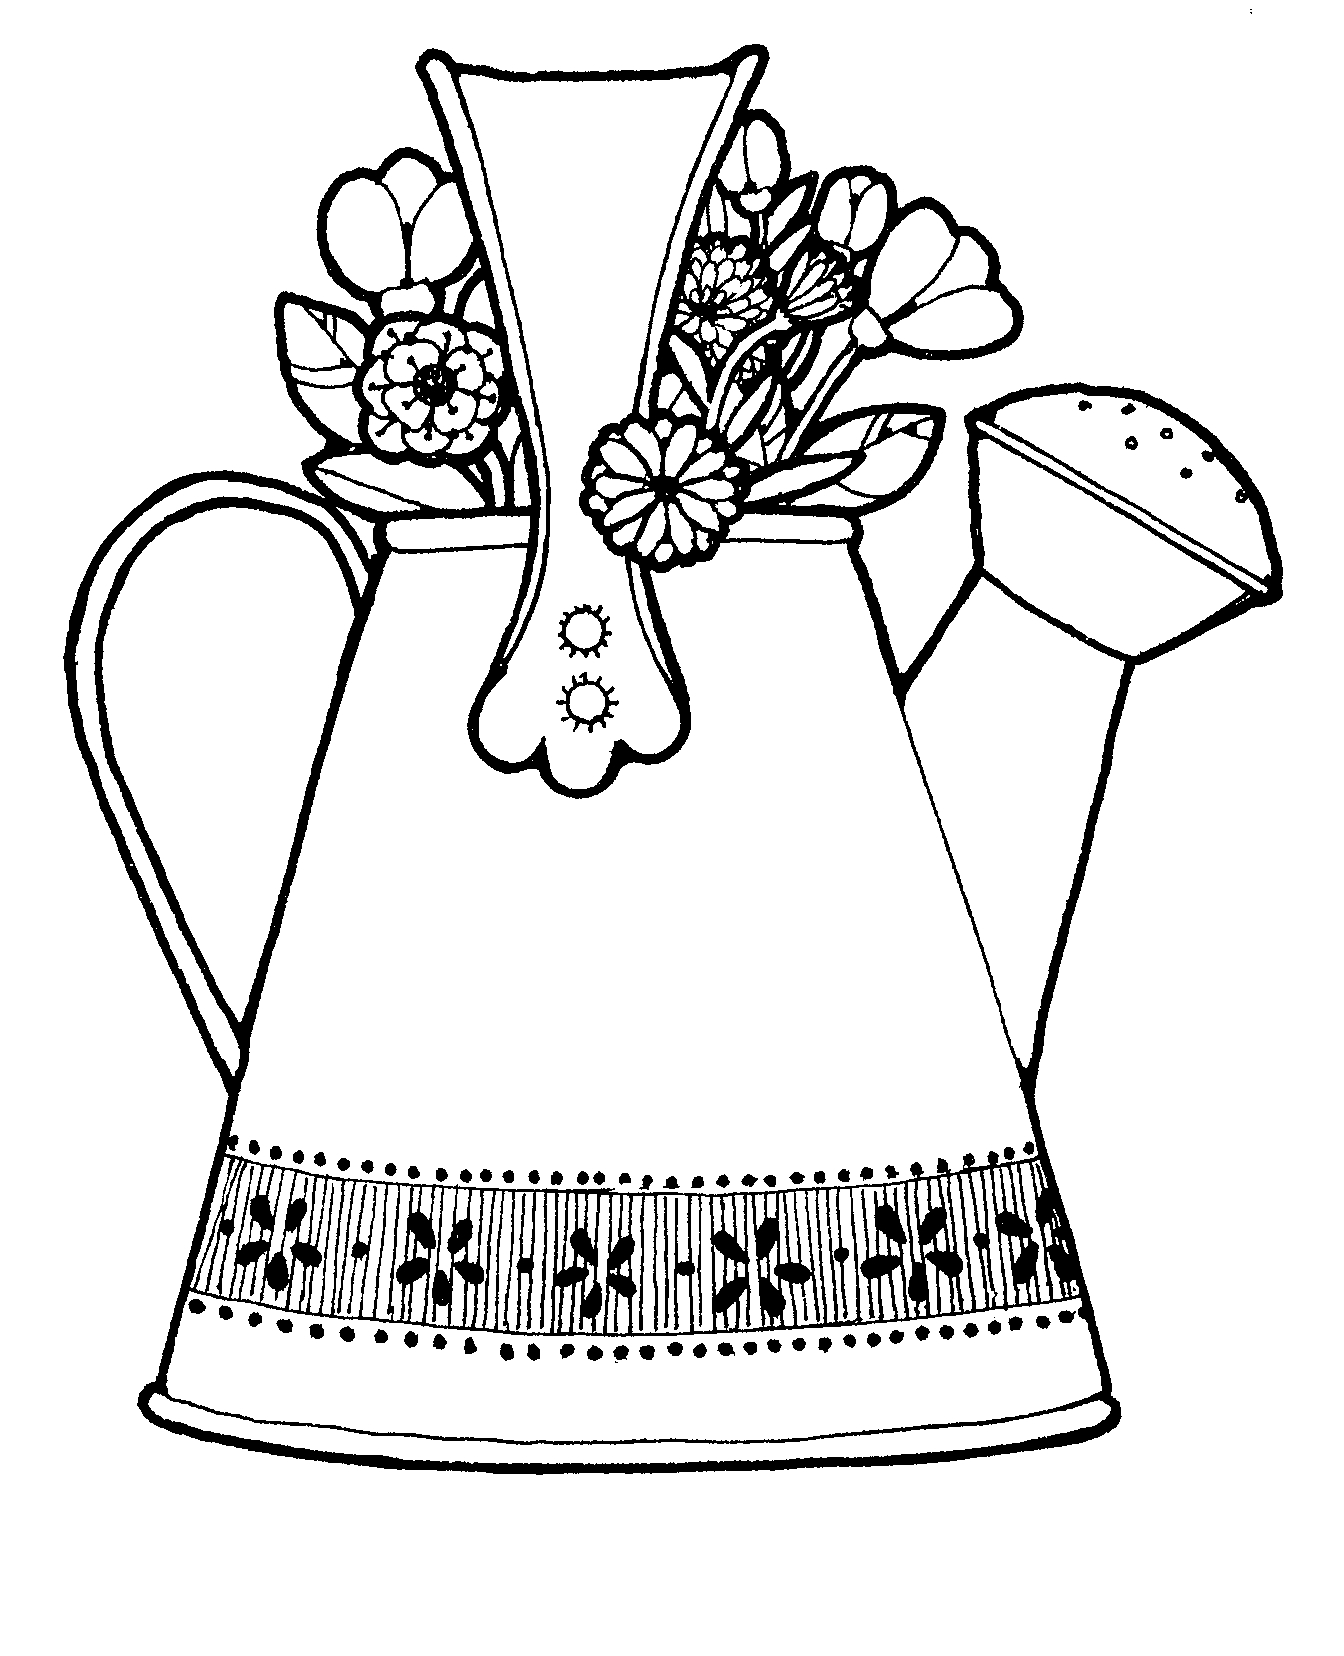 watering flowers coloring pages - photo#29